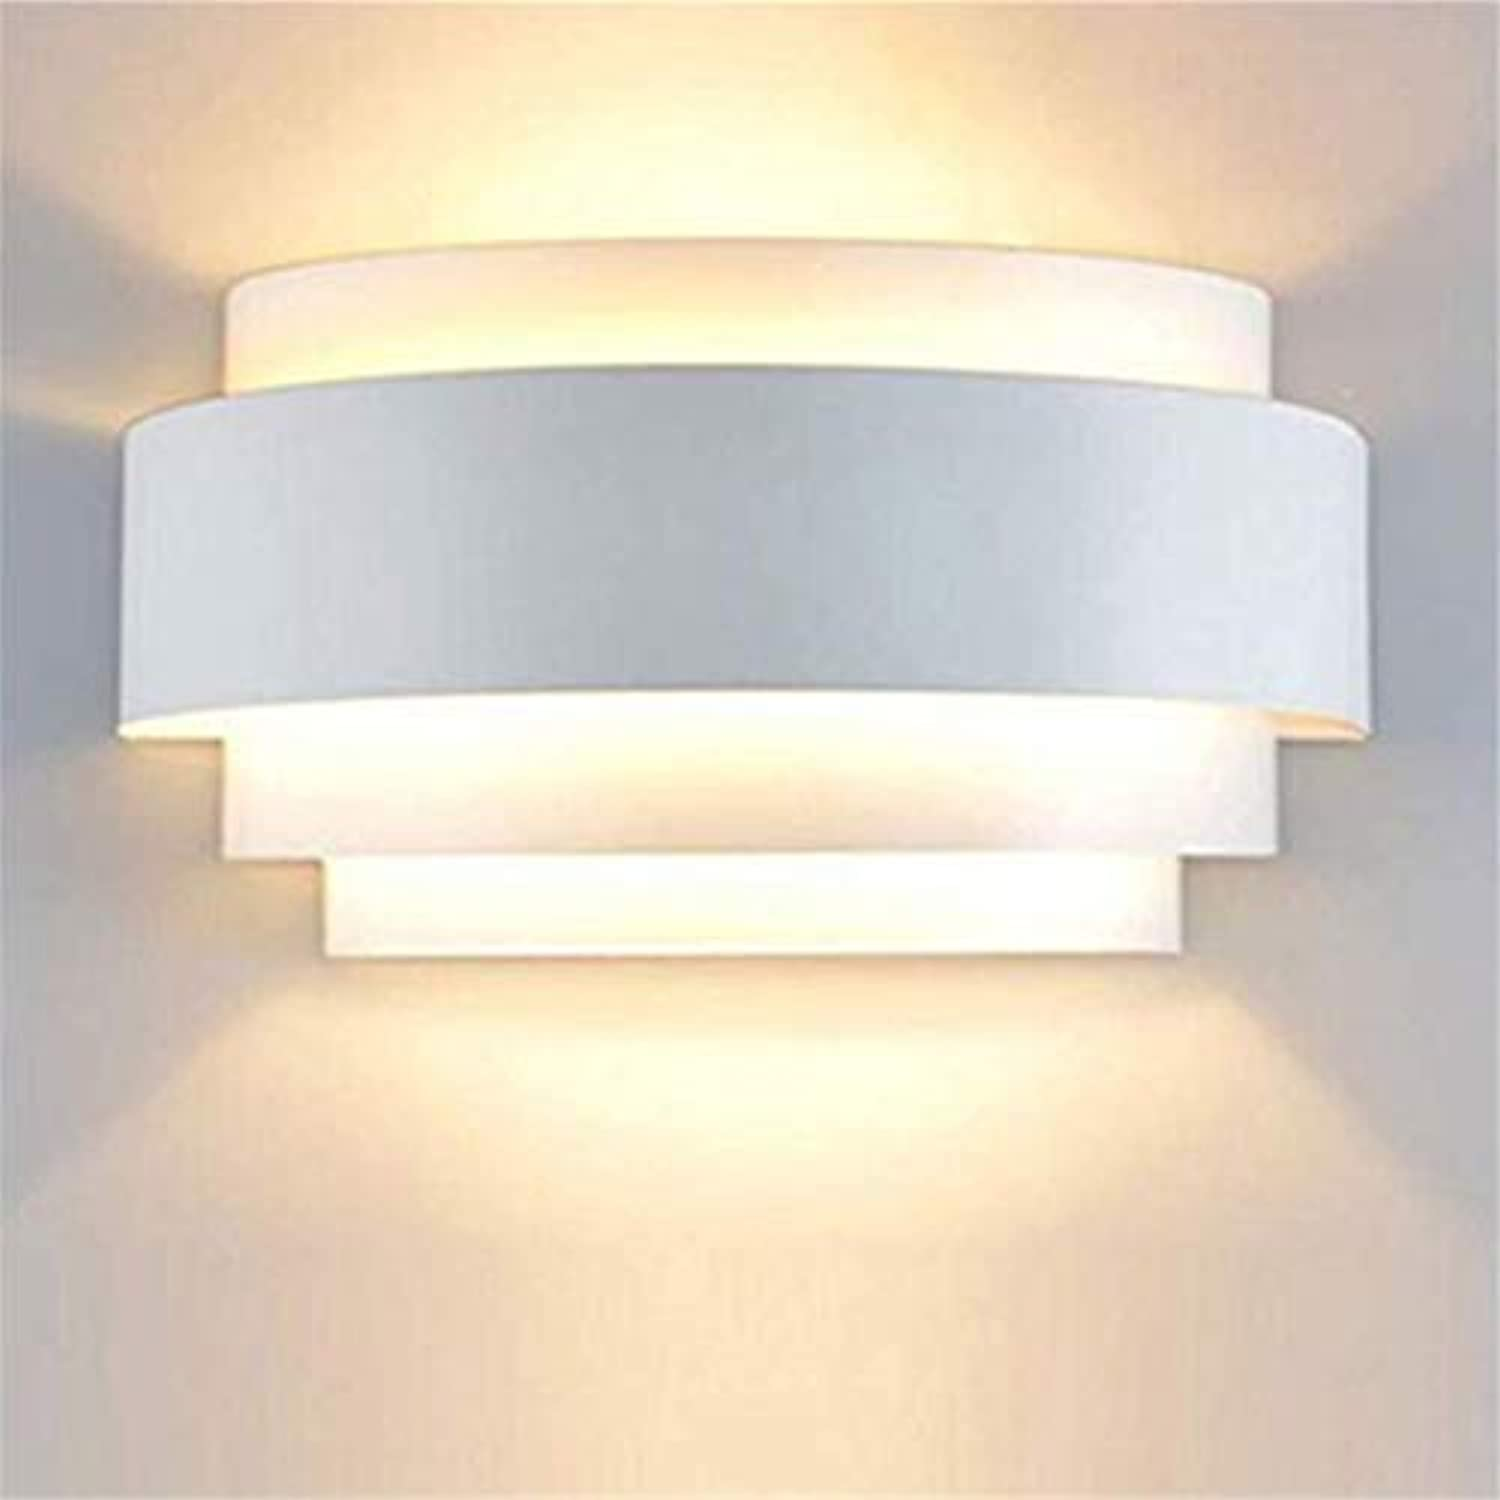 Chandeliermodern Led Wall Lights Up Down Wall Light Sconce Lamp E27 Ideal For Living Room Corridor Bedroom Light, Warm Weiß [Energy Class A++]